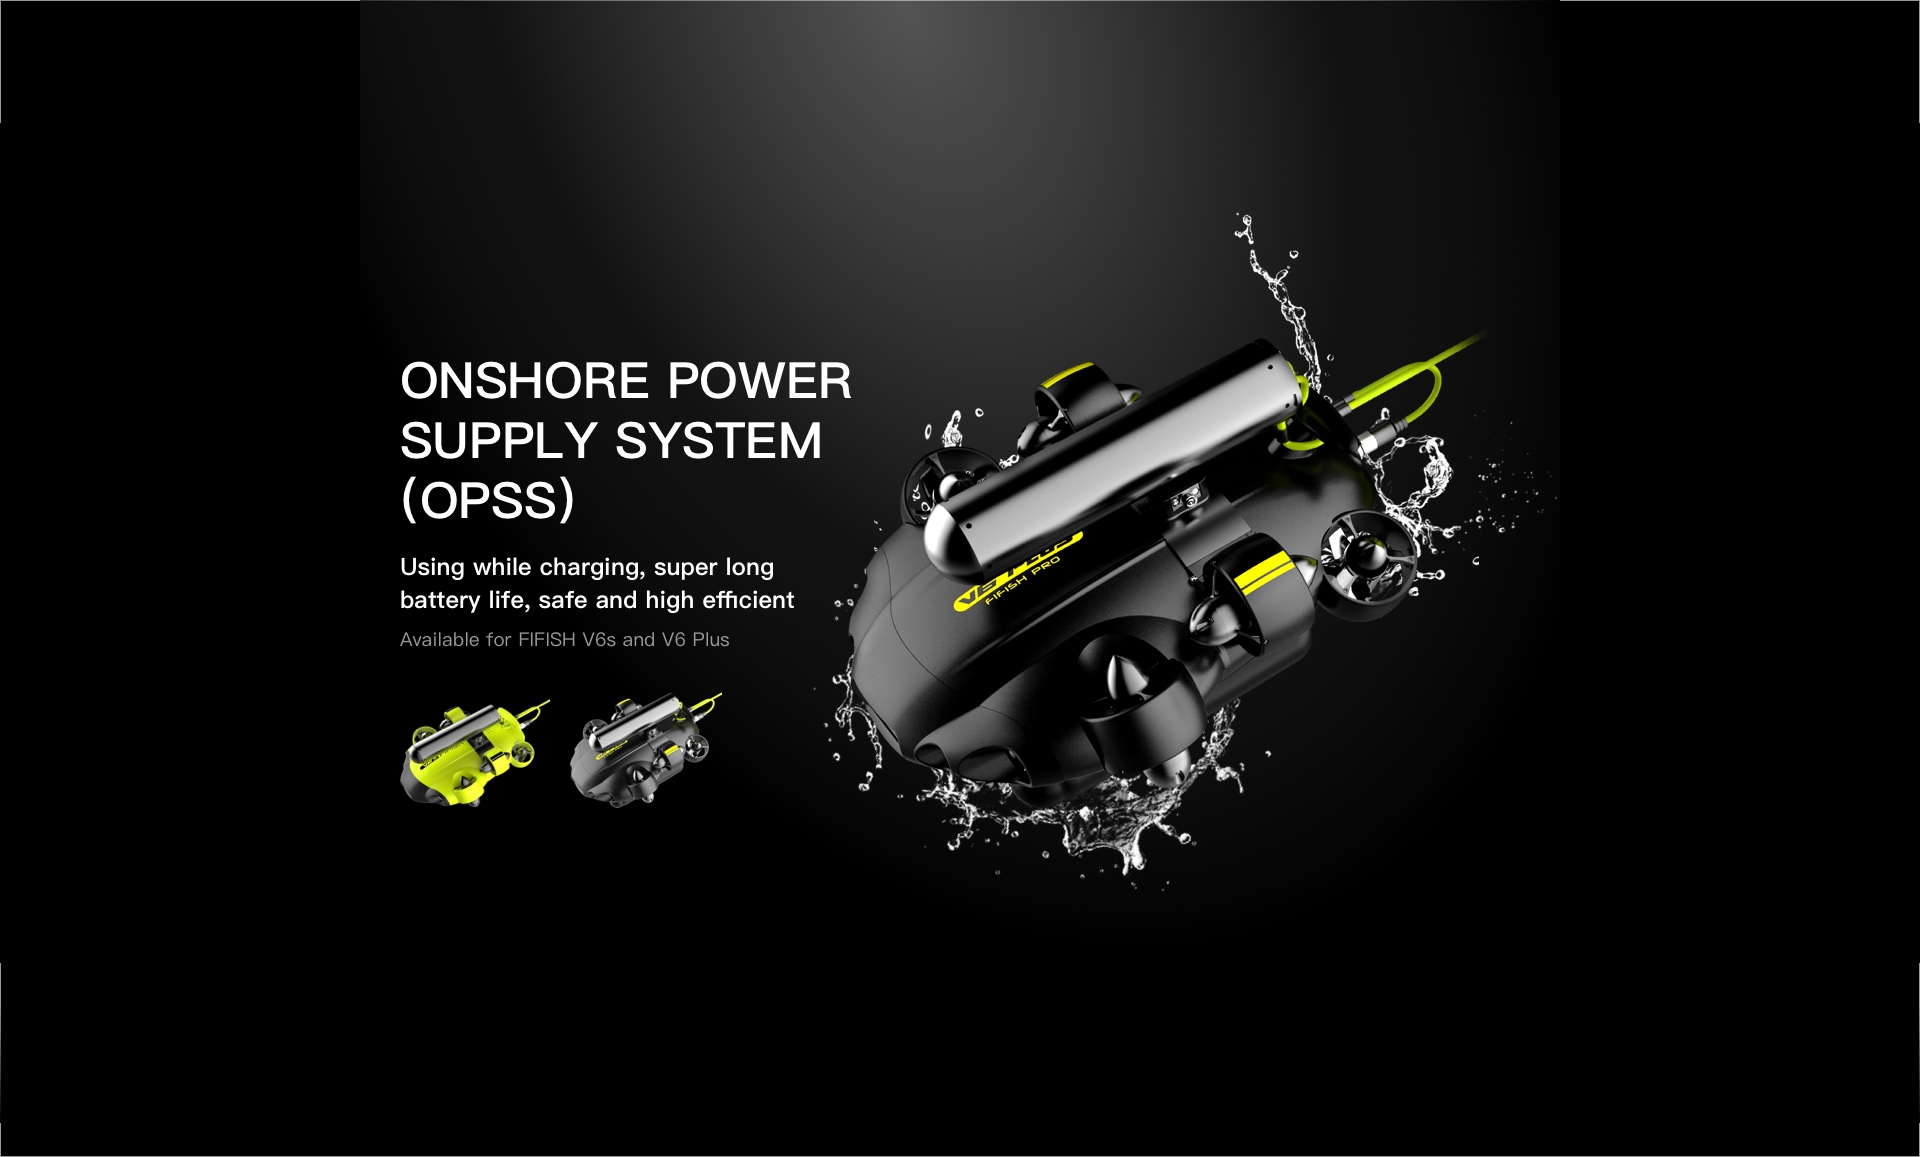 ONSHORE POWER SUPPLY SYSTEM (OPSS)